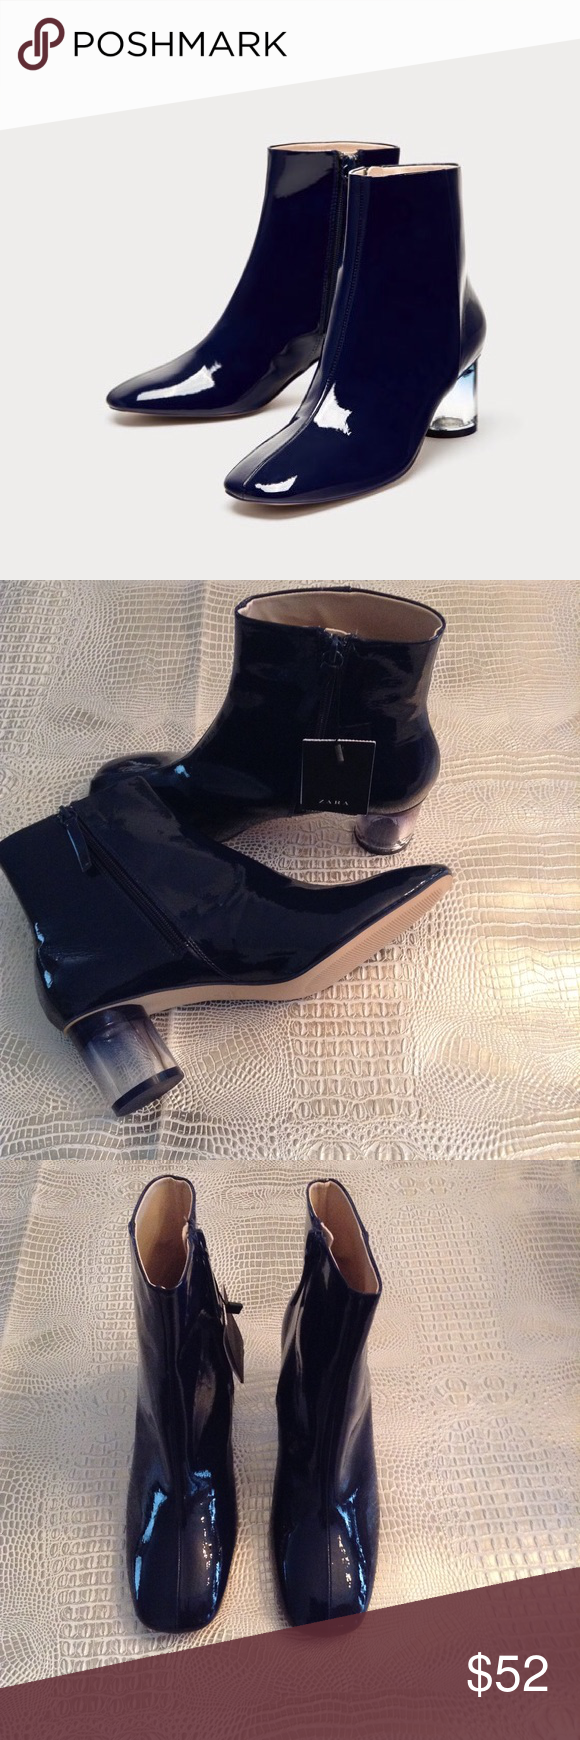 afa79a78a877 Zara Navy Ankle Boots with Clear Heels Navy blue high heel ankle boots.  Faux patent finish. Clear heel detail. Side zip closure. Heel height 2.2